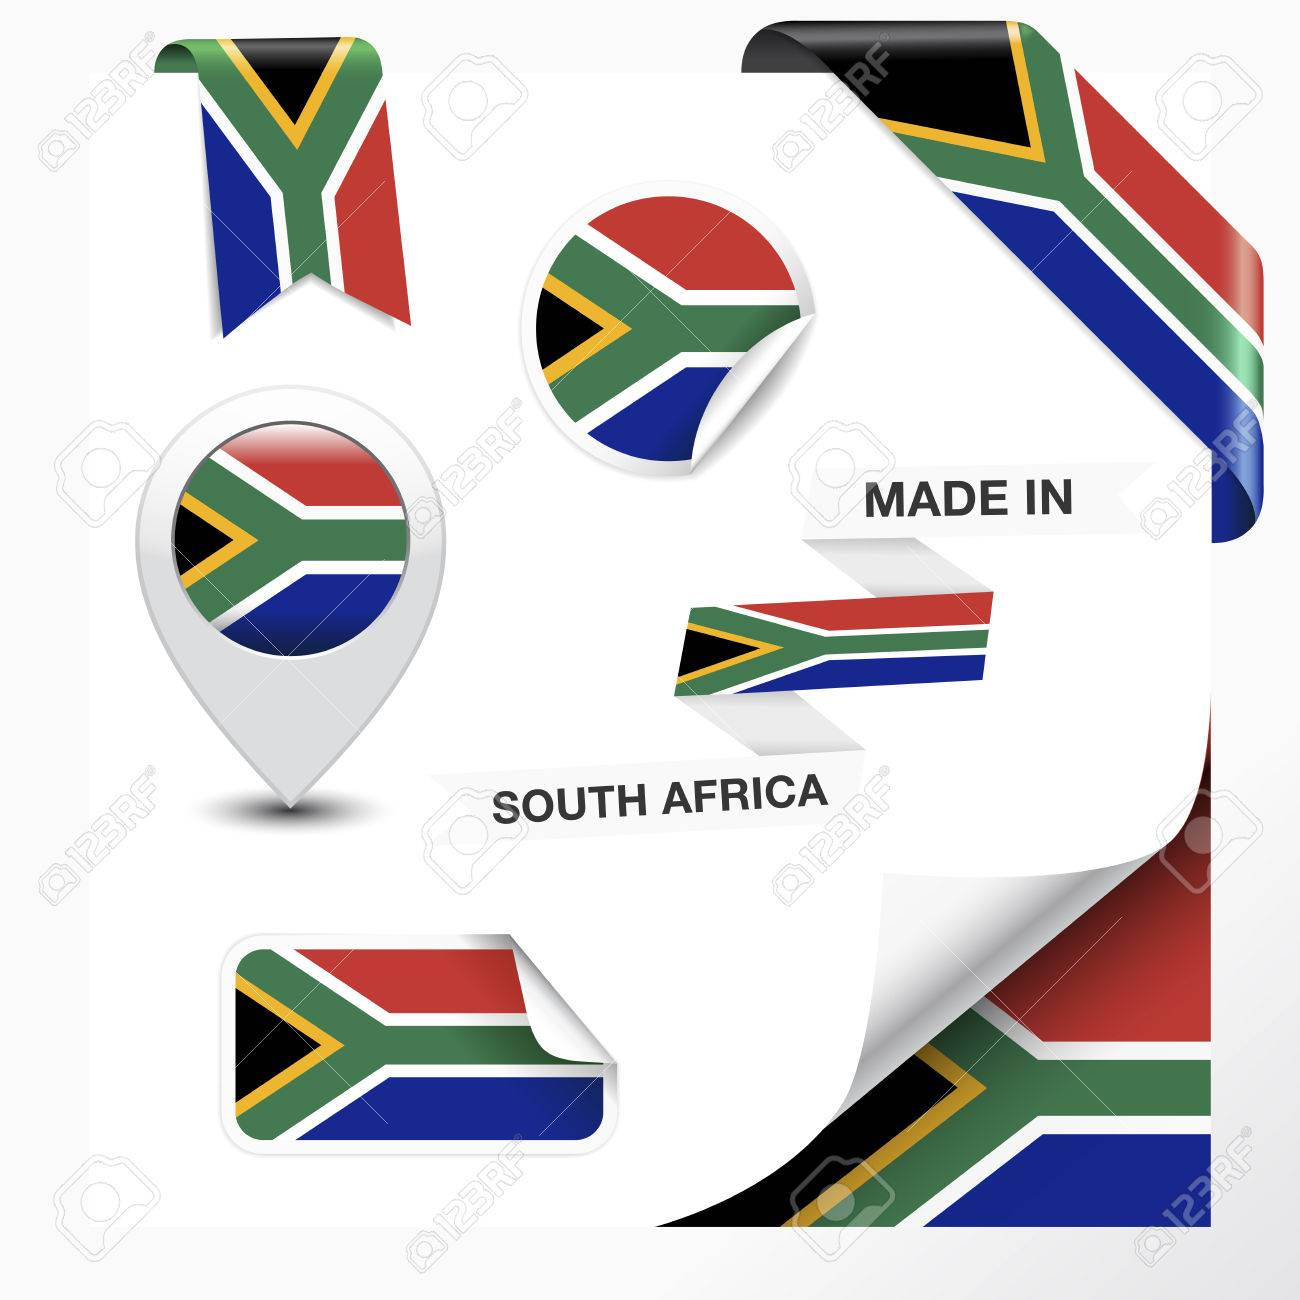 233 Made In South Africa Stock Vector Illustration And Royalty ...